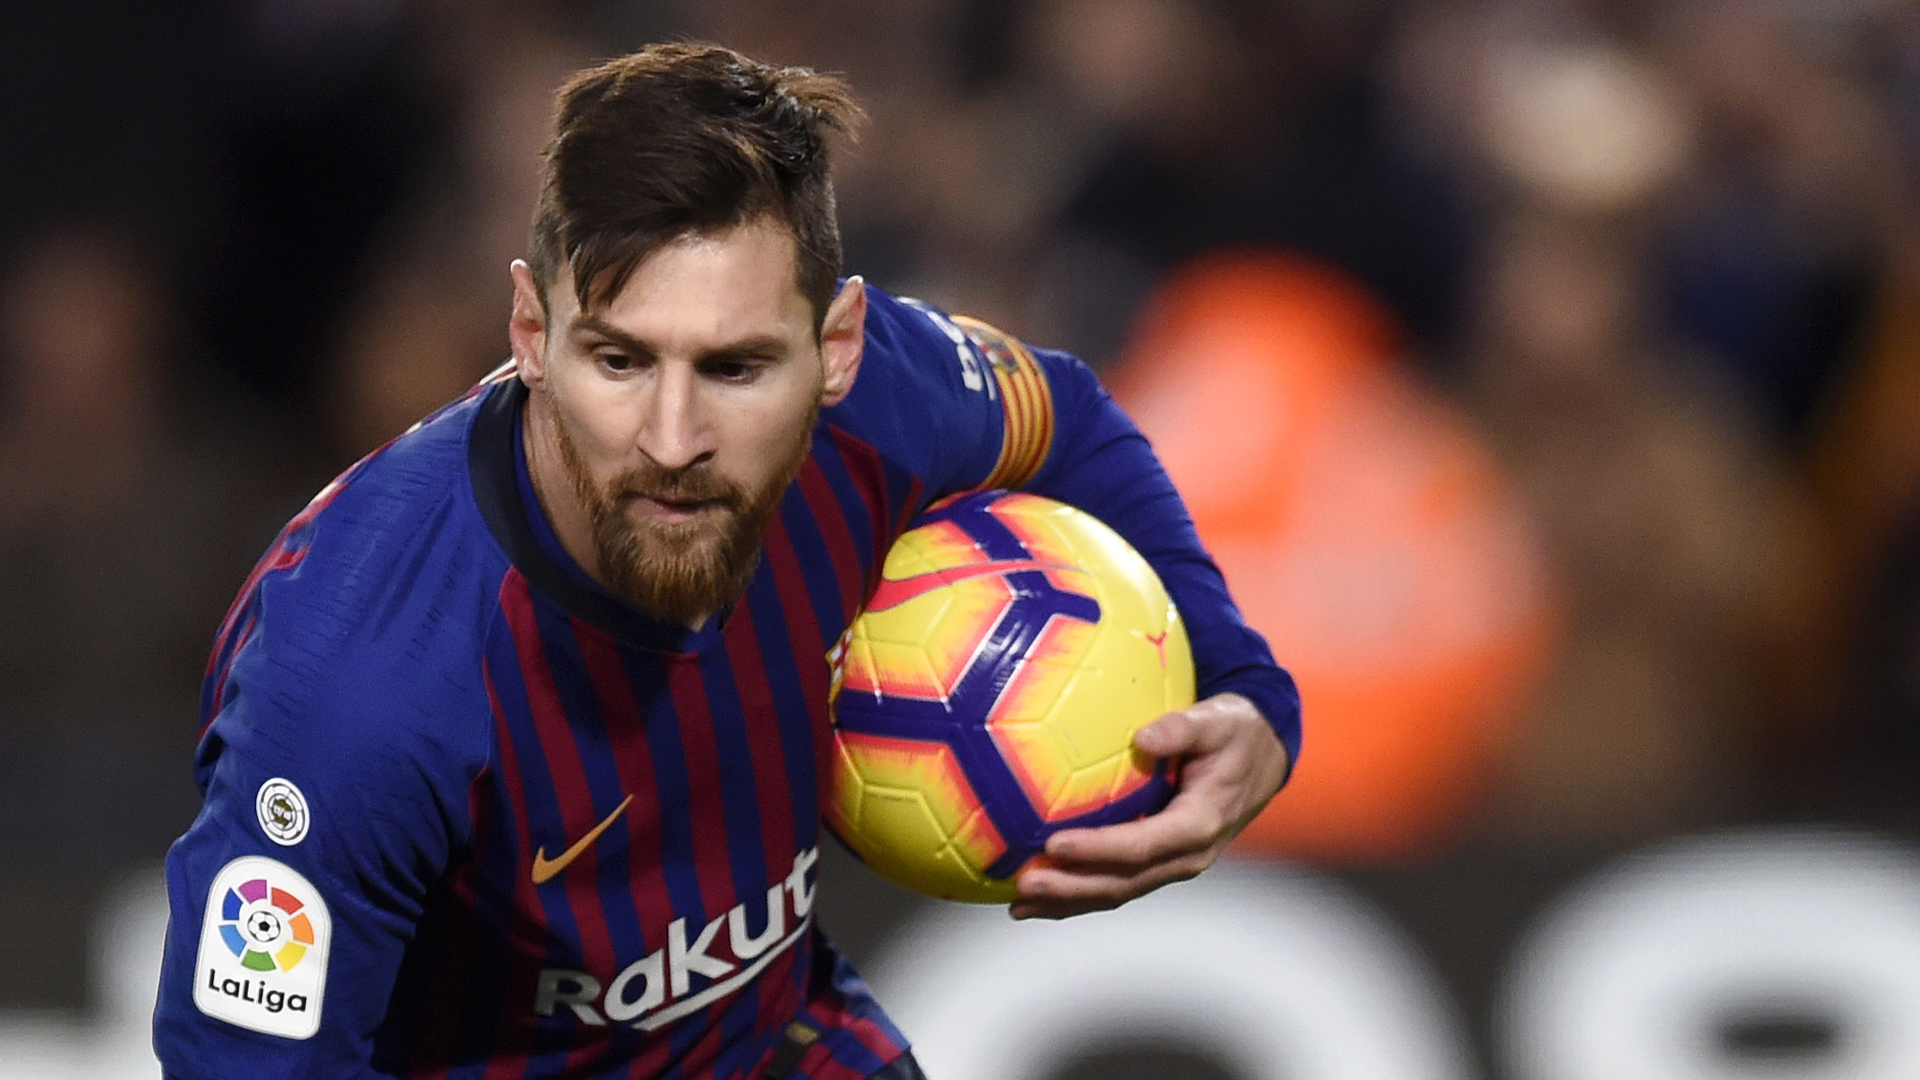 Uncertainty about Messi does not affect Real Madrid's `Clasico' plans, Solari says